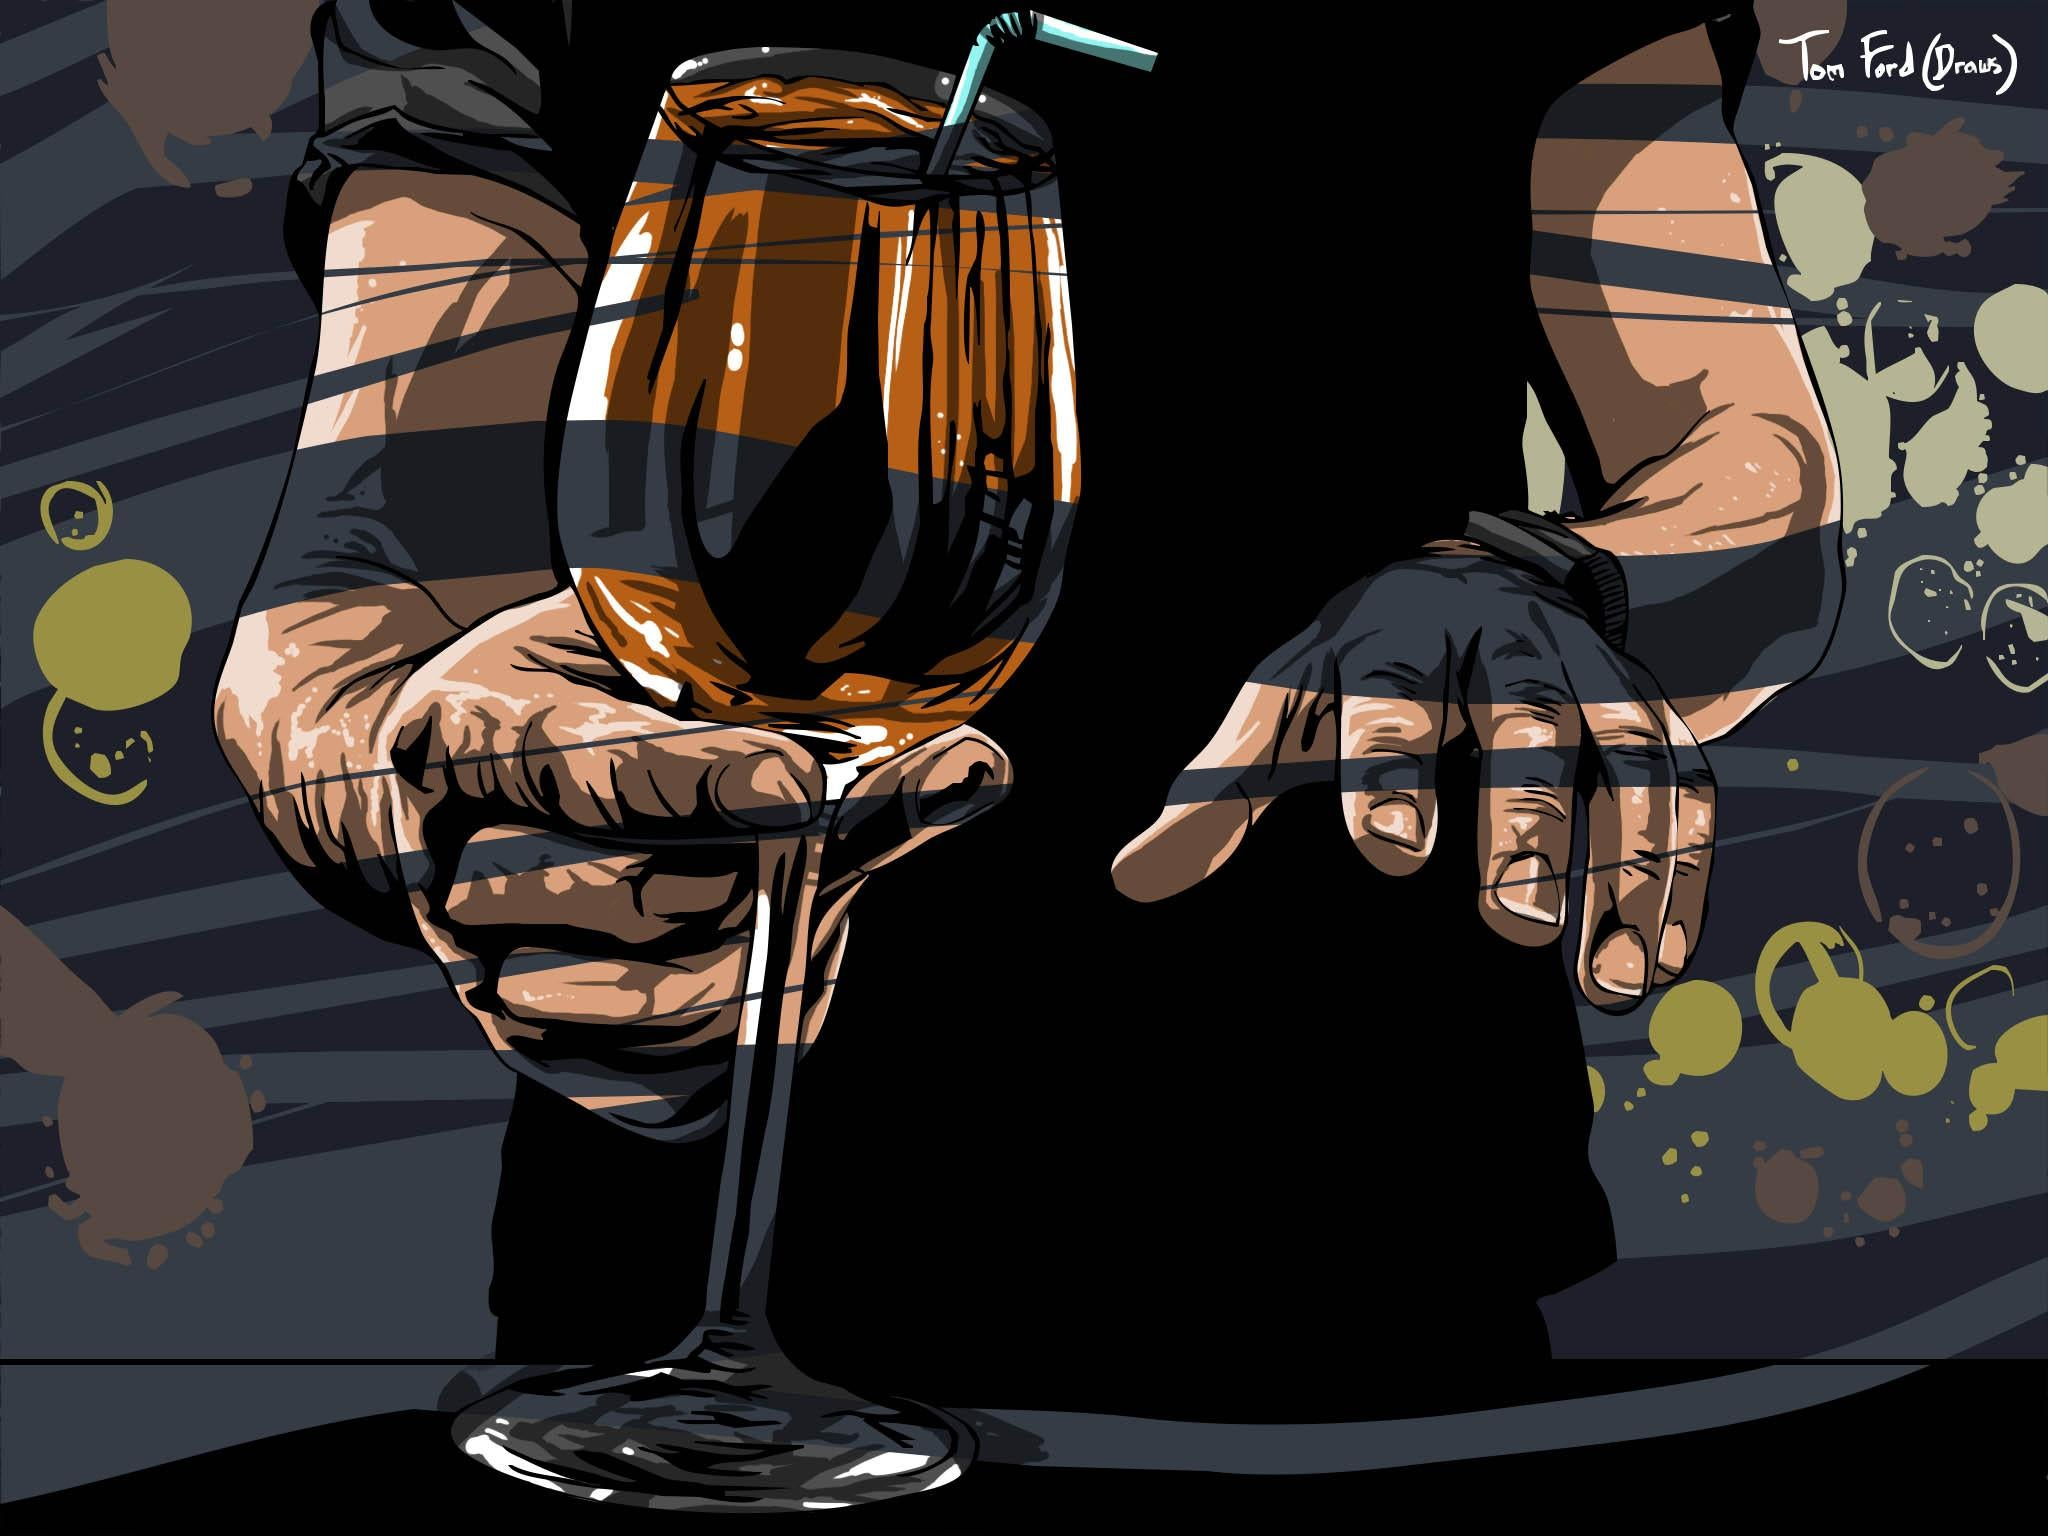 Middle-class drinking epidemic' criticised recommendations